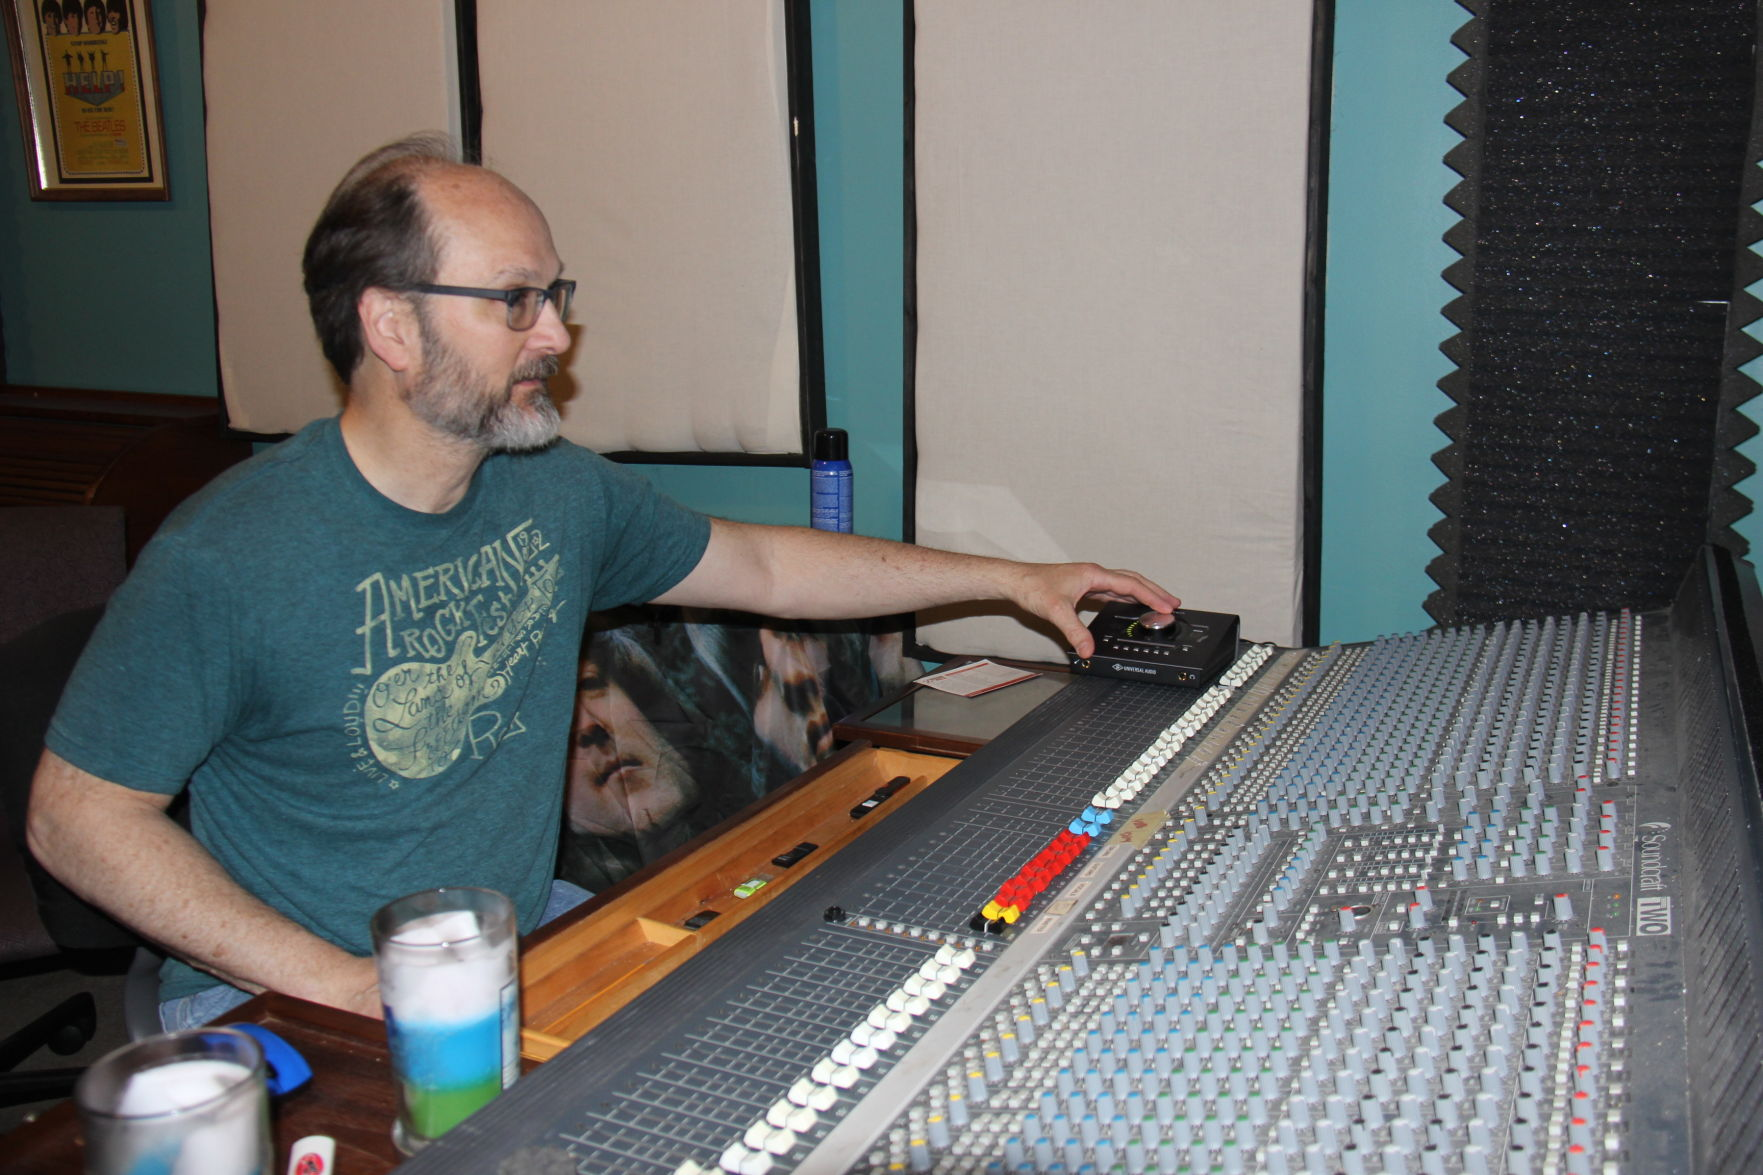 St. Pete District Studio will record musicians by musicians